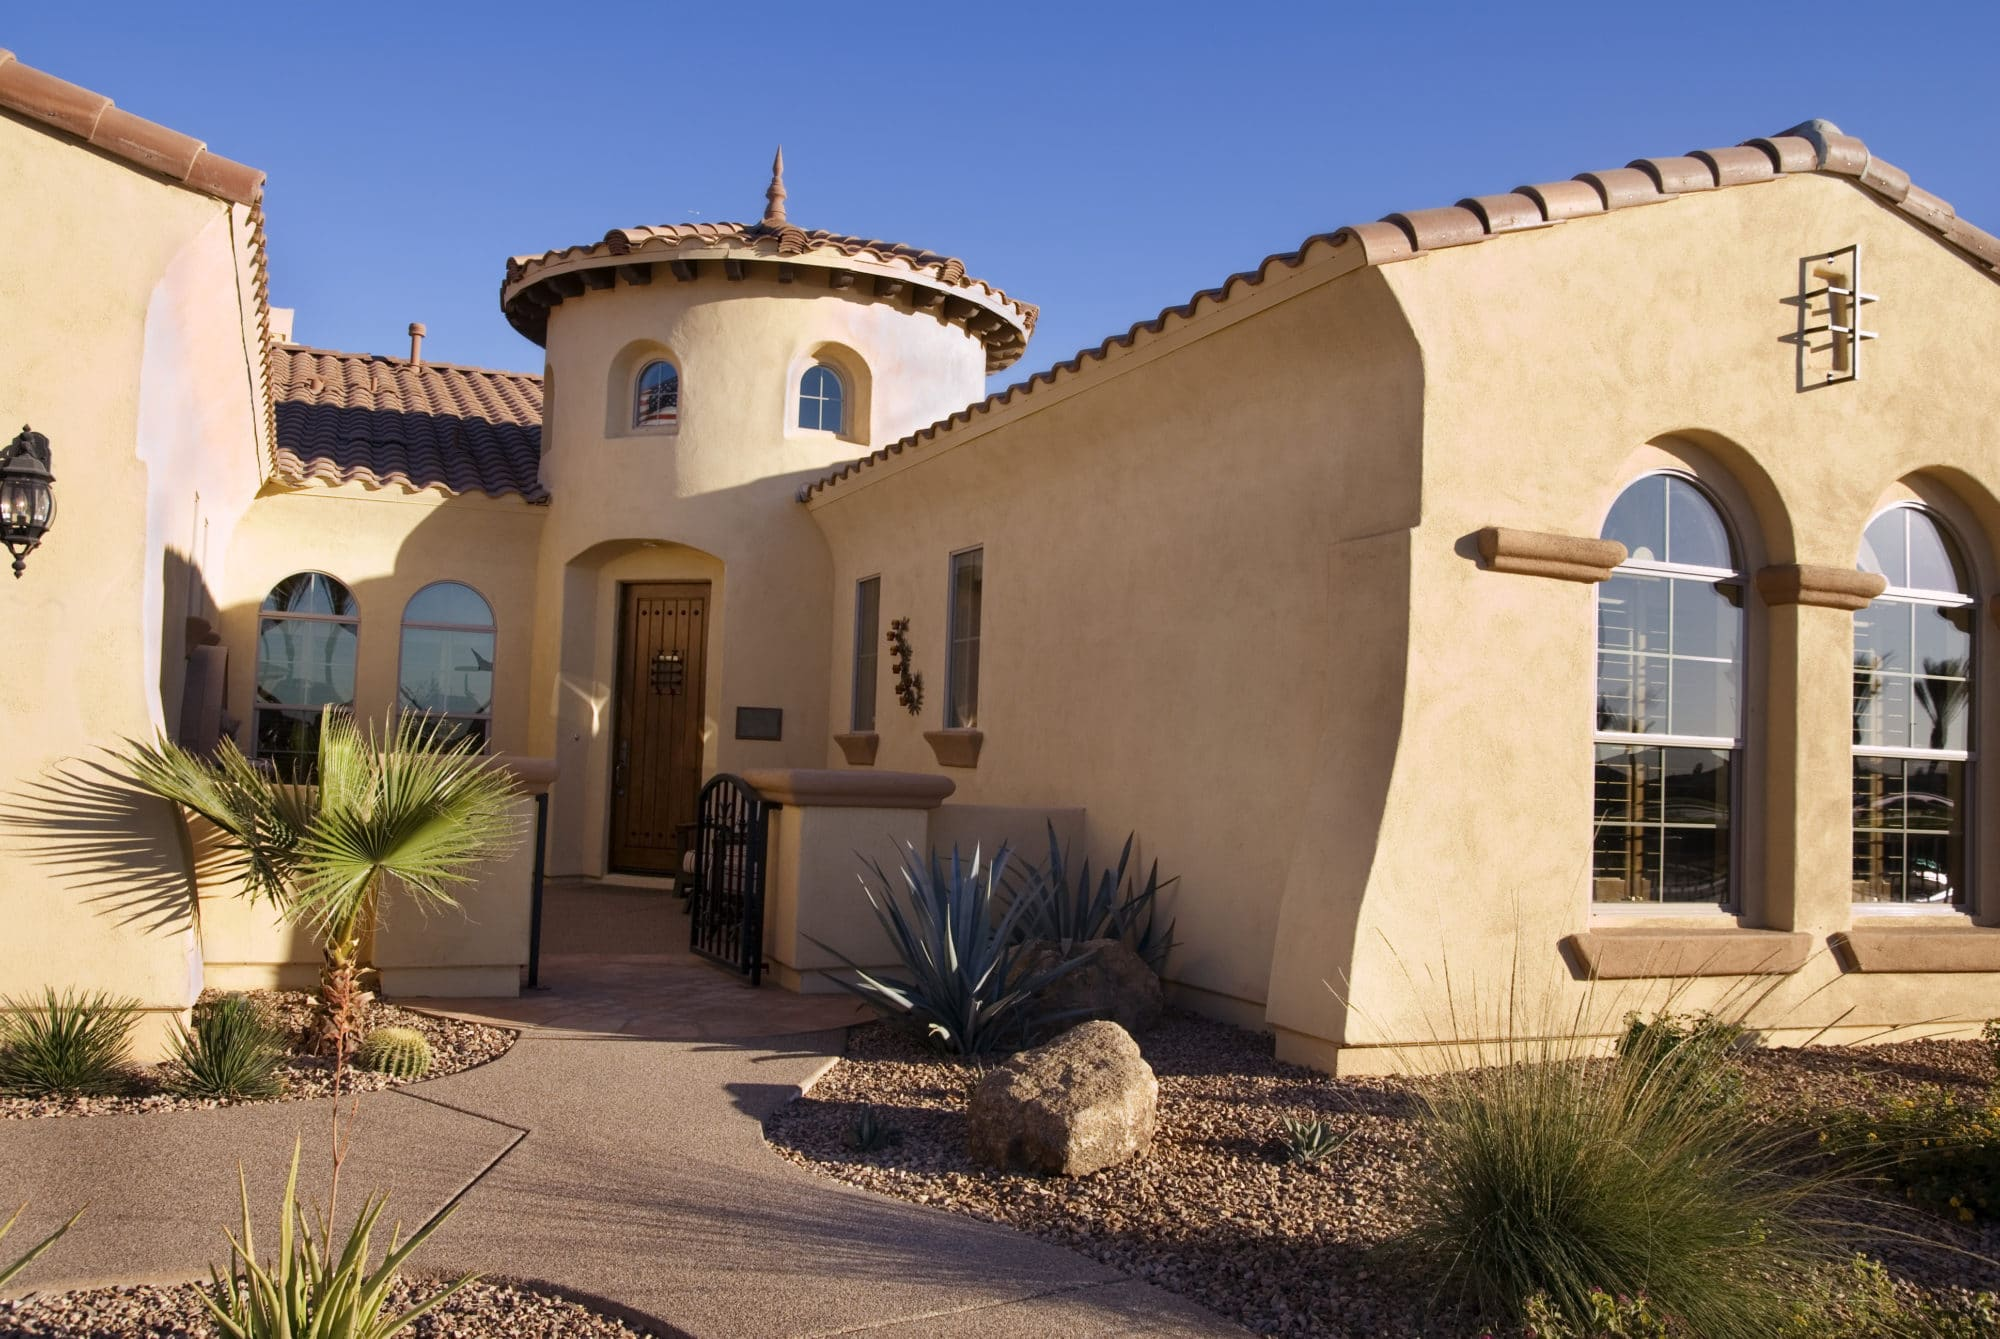 Sierra Remodeling installs high quality vinyl replacement windows into your Southeastern Arizona home!